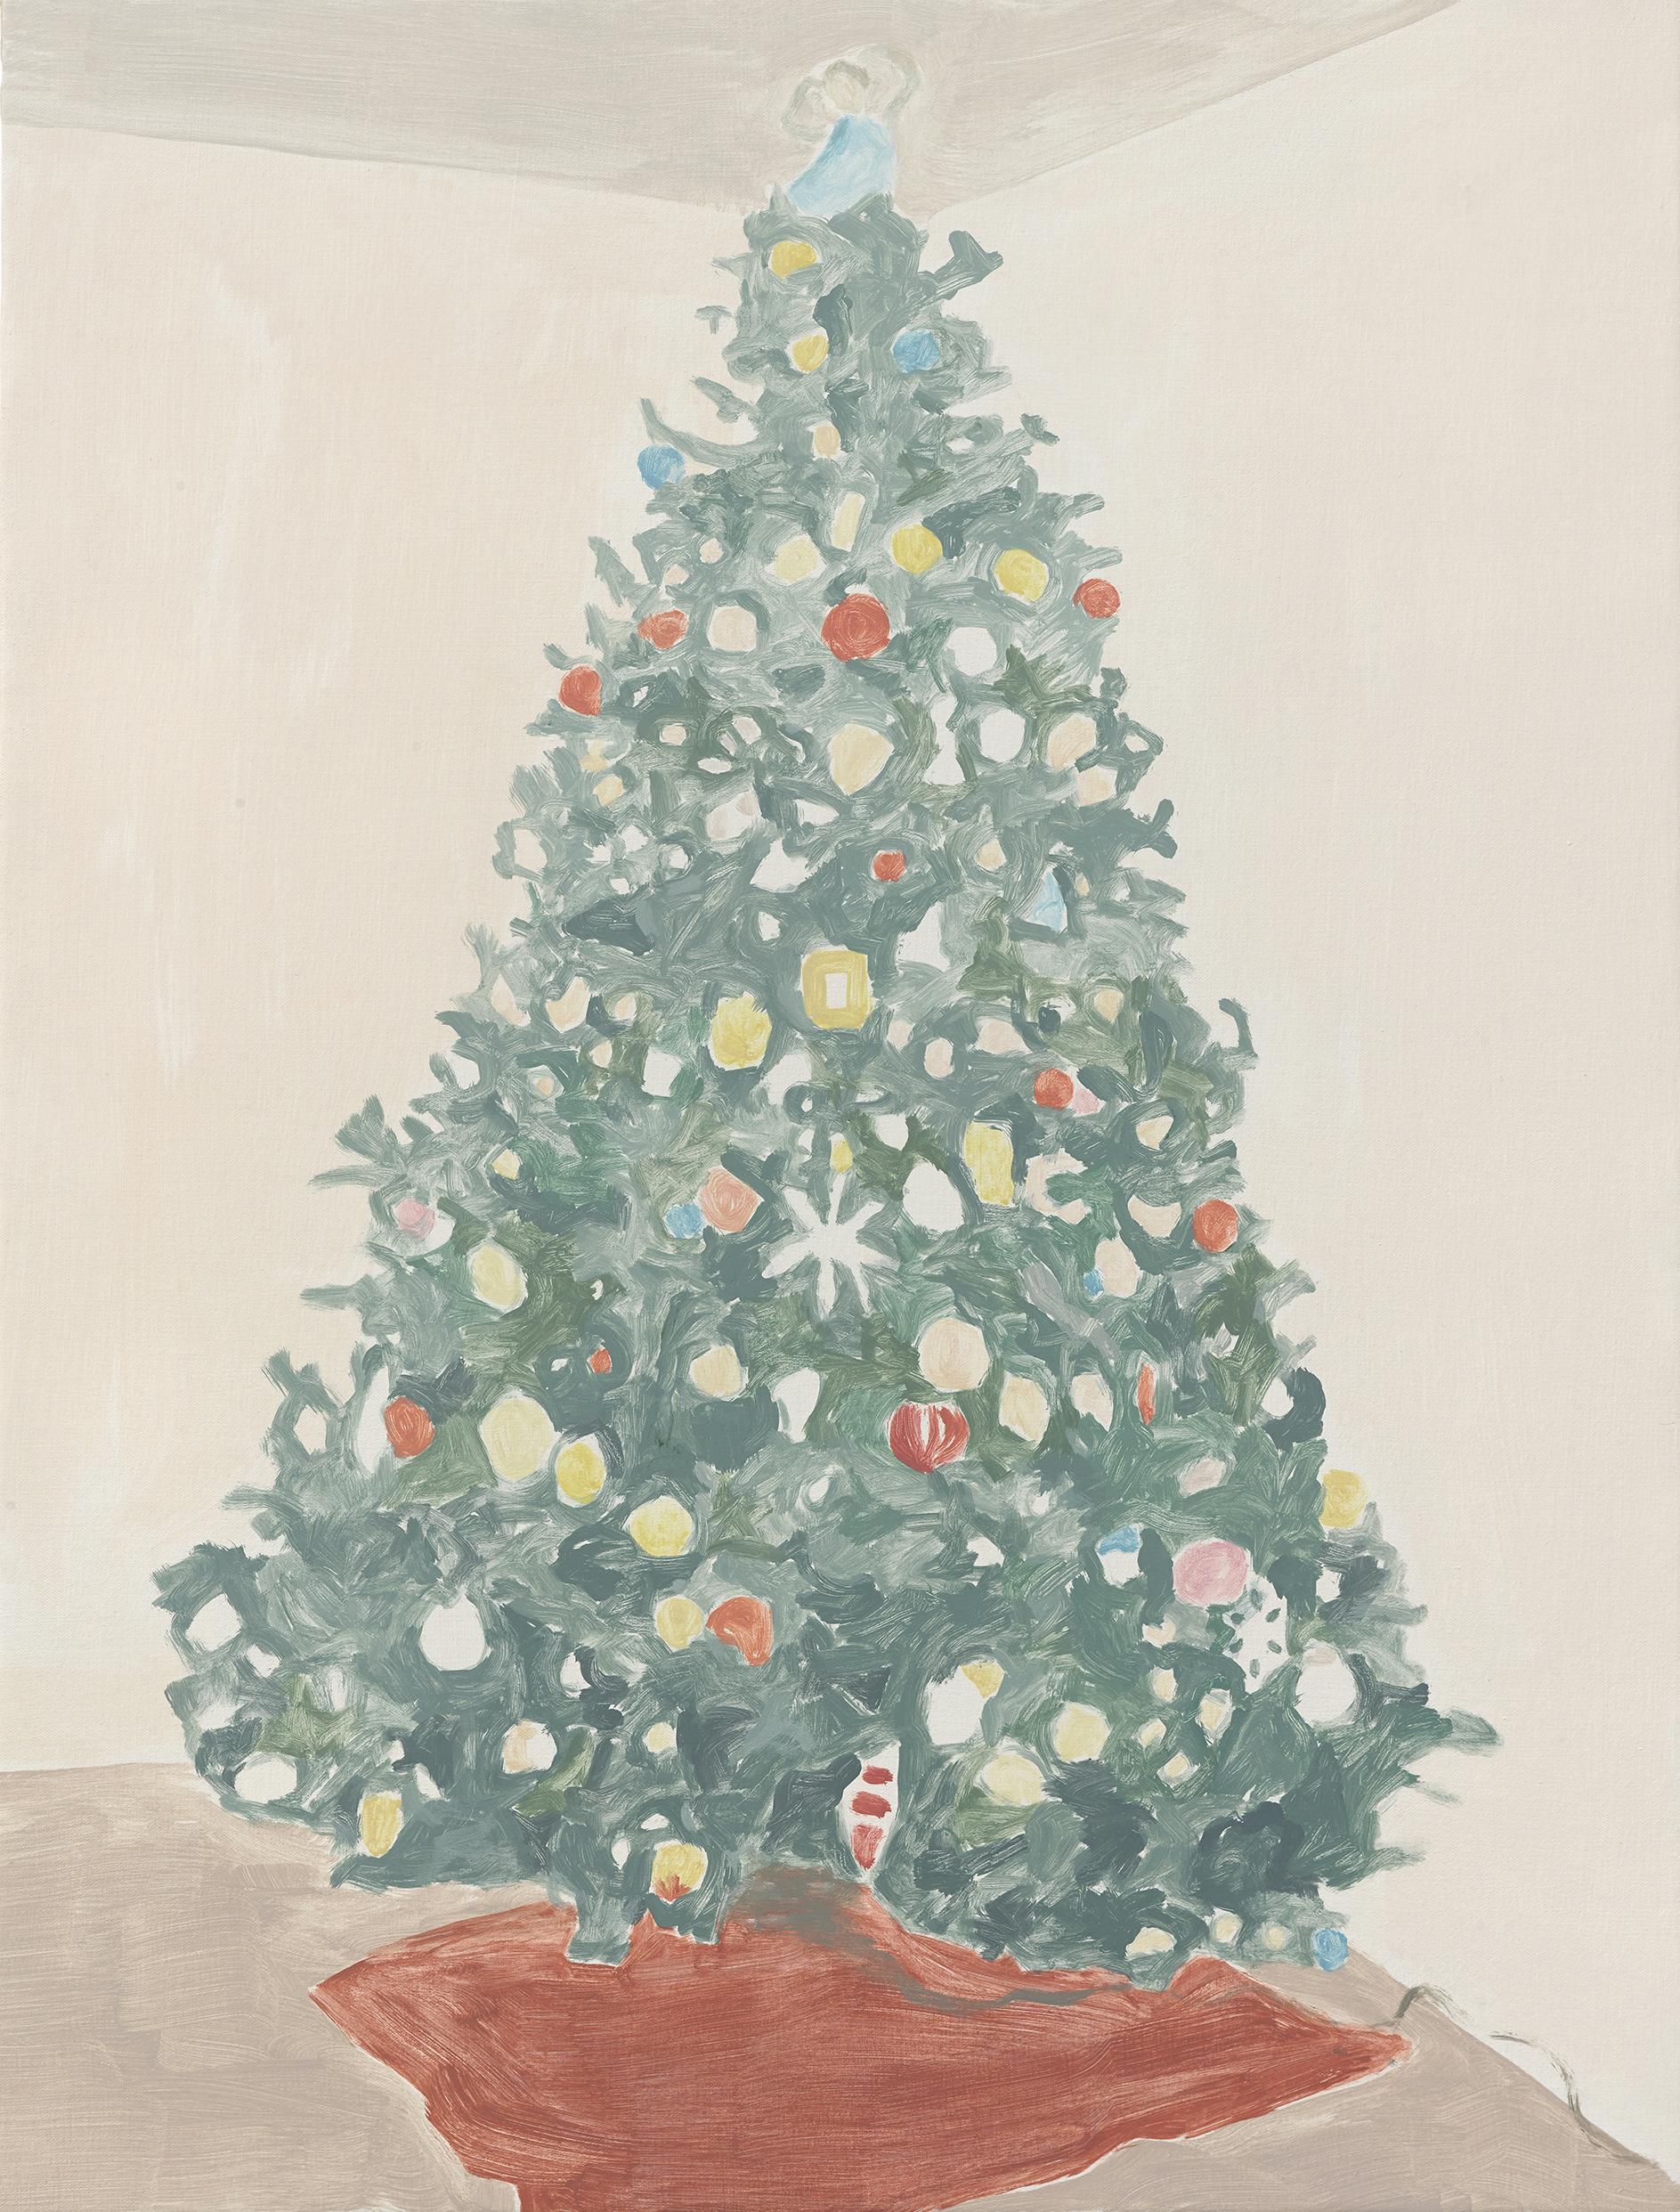 Francesca Fuchs, Xmas Tree 3 (Red Rug), 2014